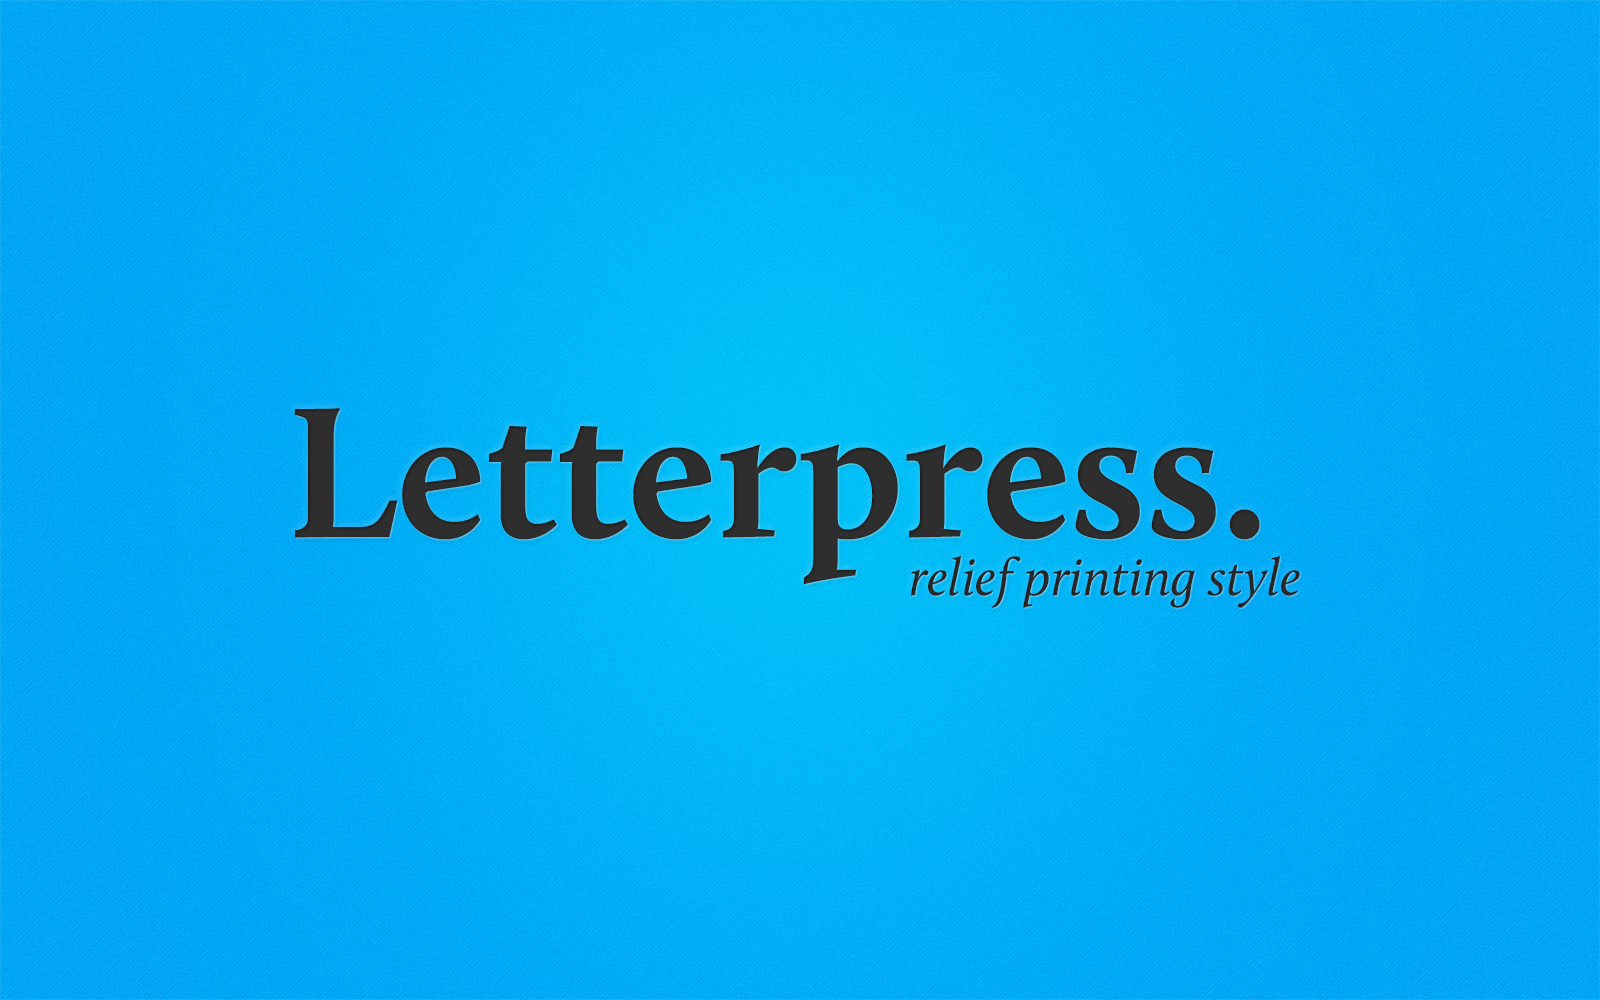 Effects: Letterpress Style - Preview Image